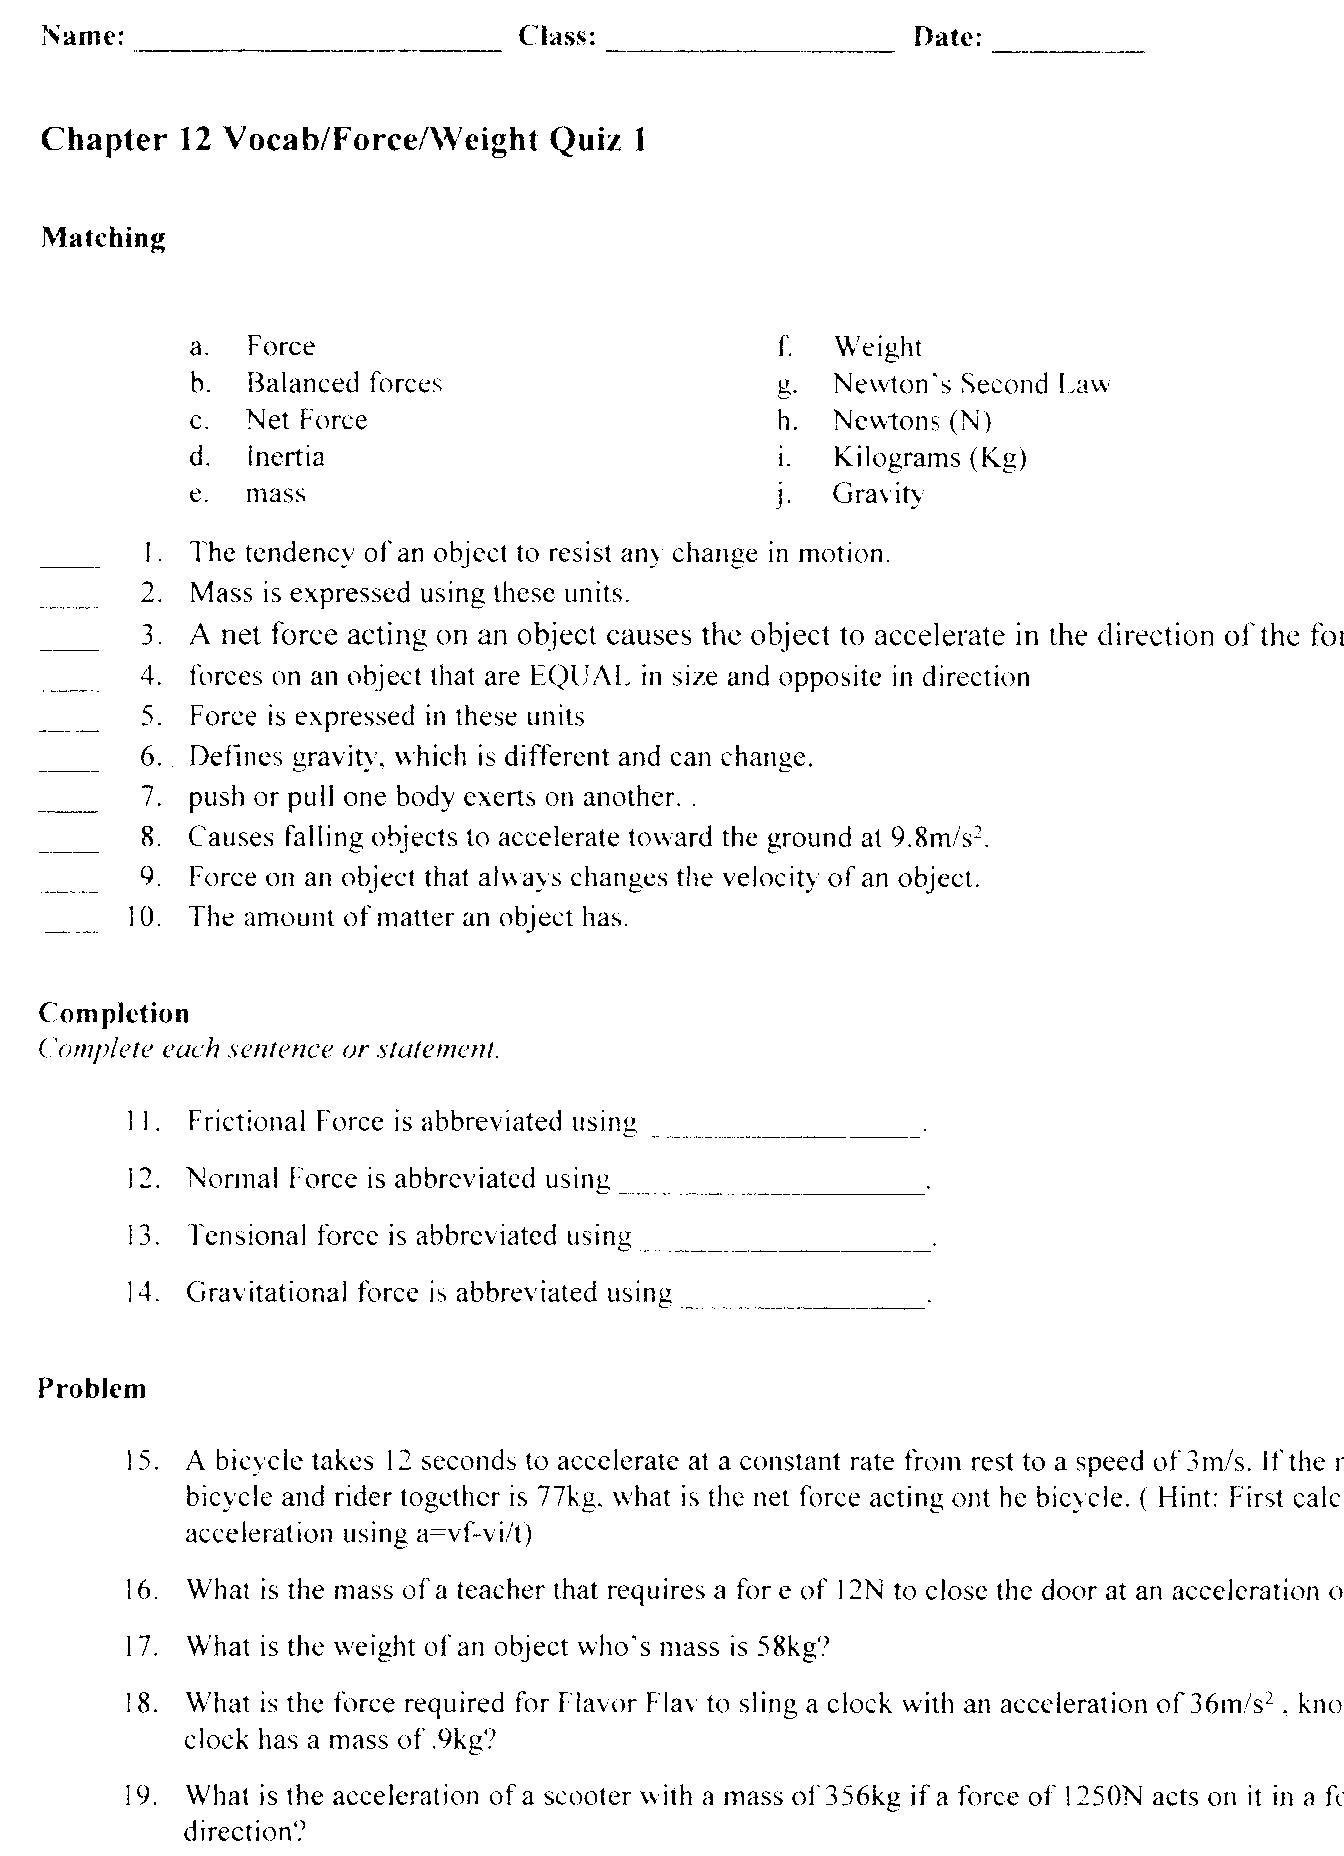 worksheet Calculating Force Worksheet quia class page riverspscience worksheetsforce quiz side 1